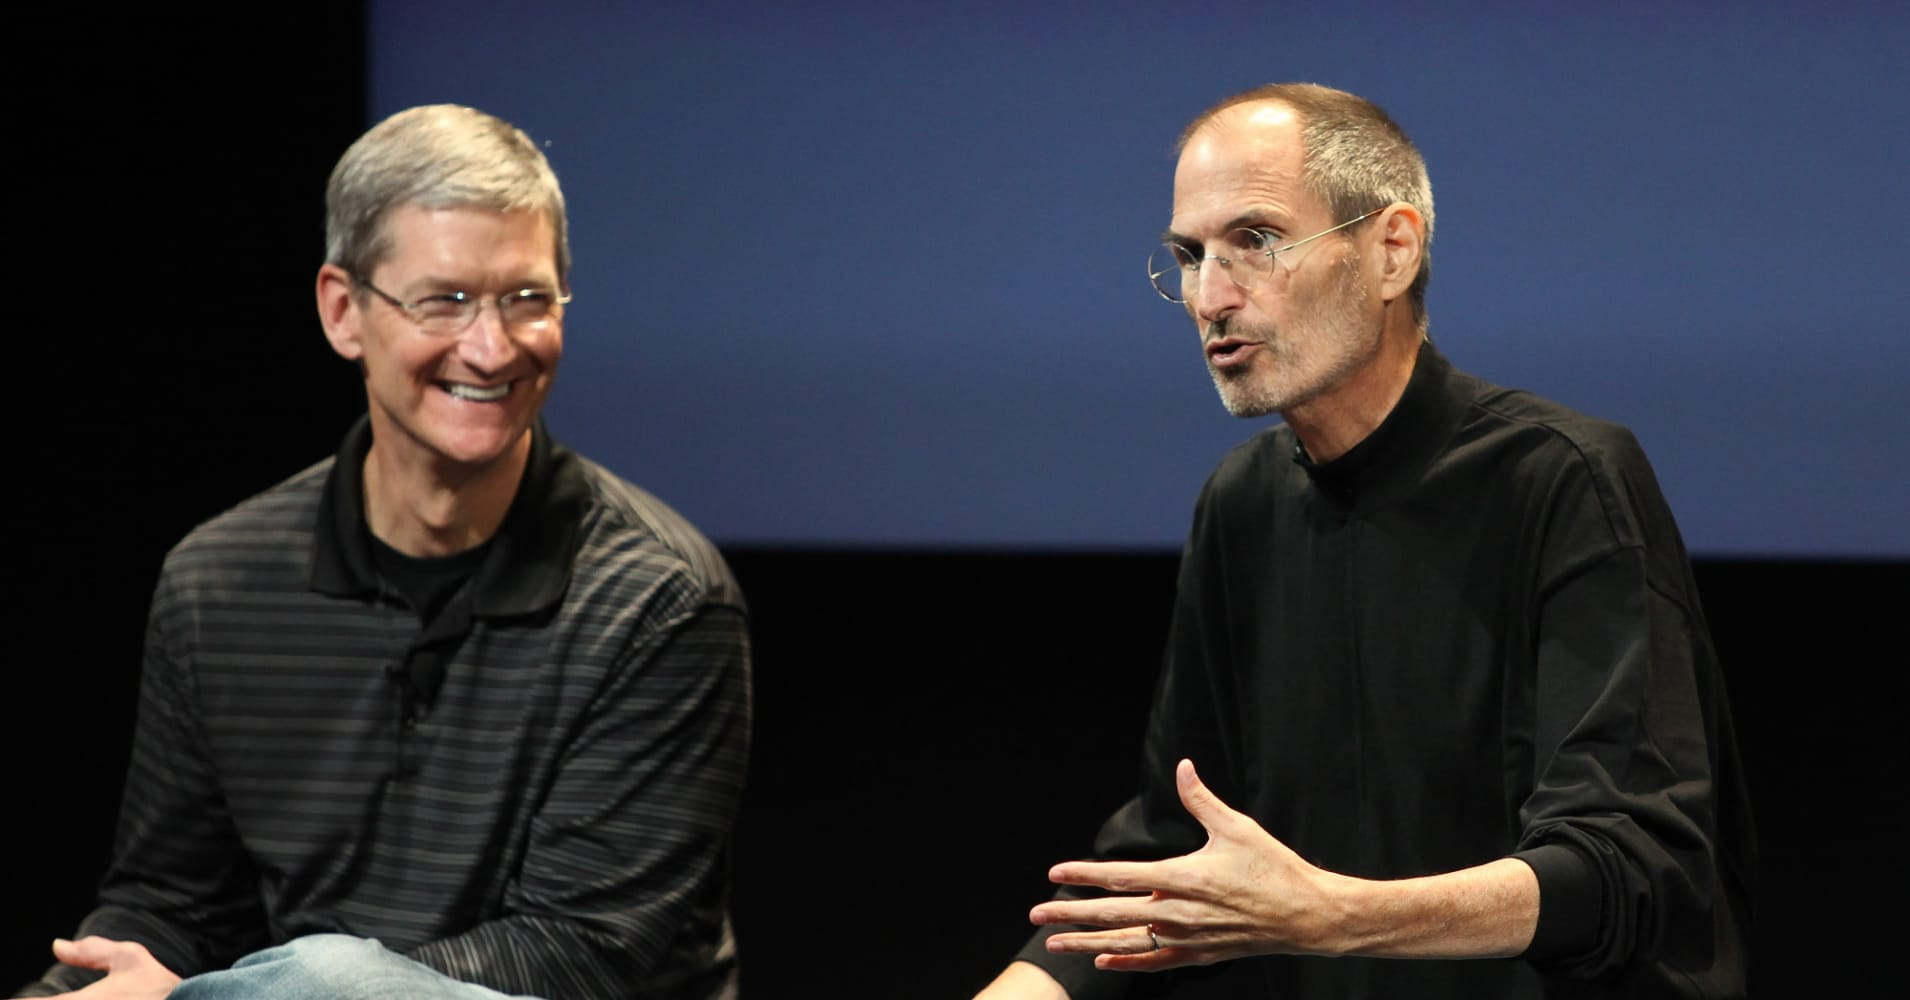 Tim Cook (left) and Steve Jobs in 2010.